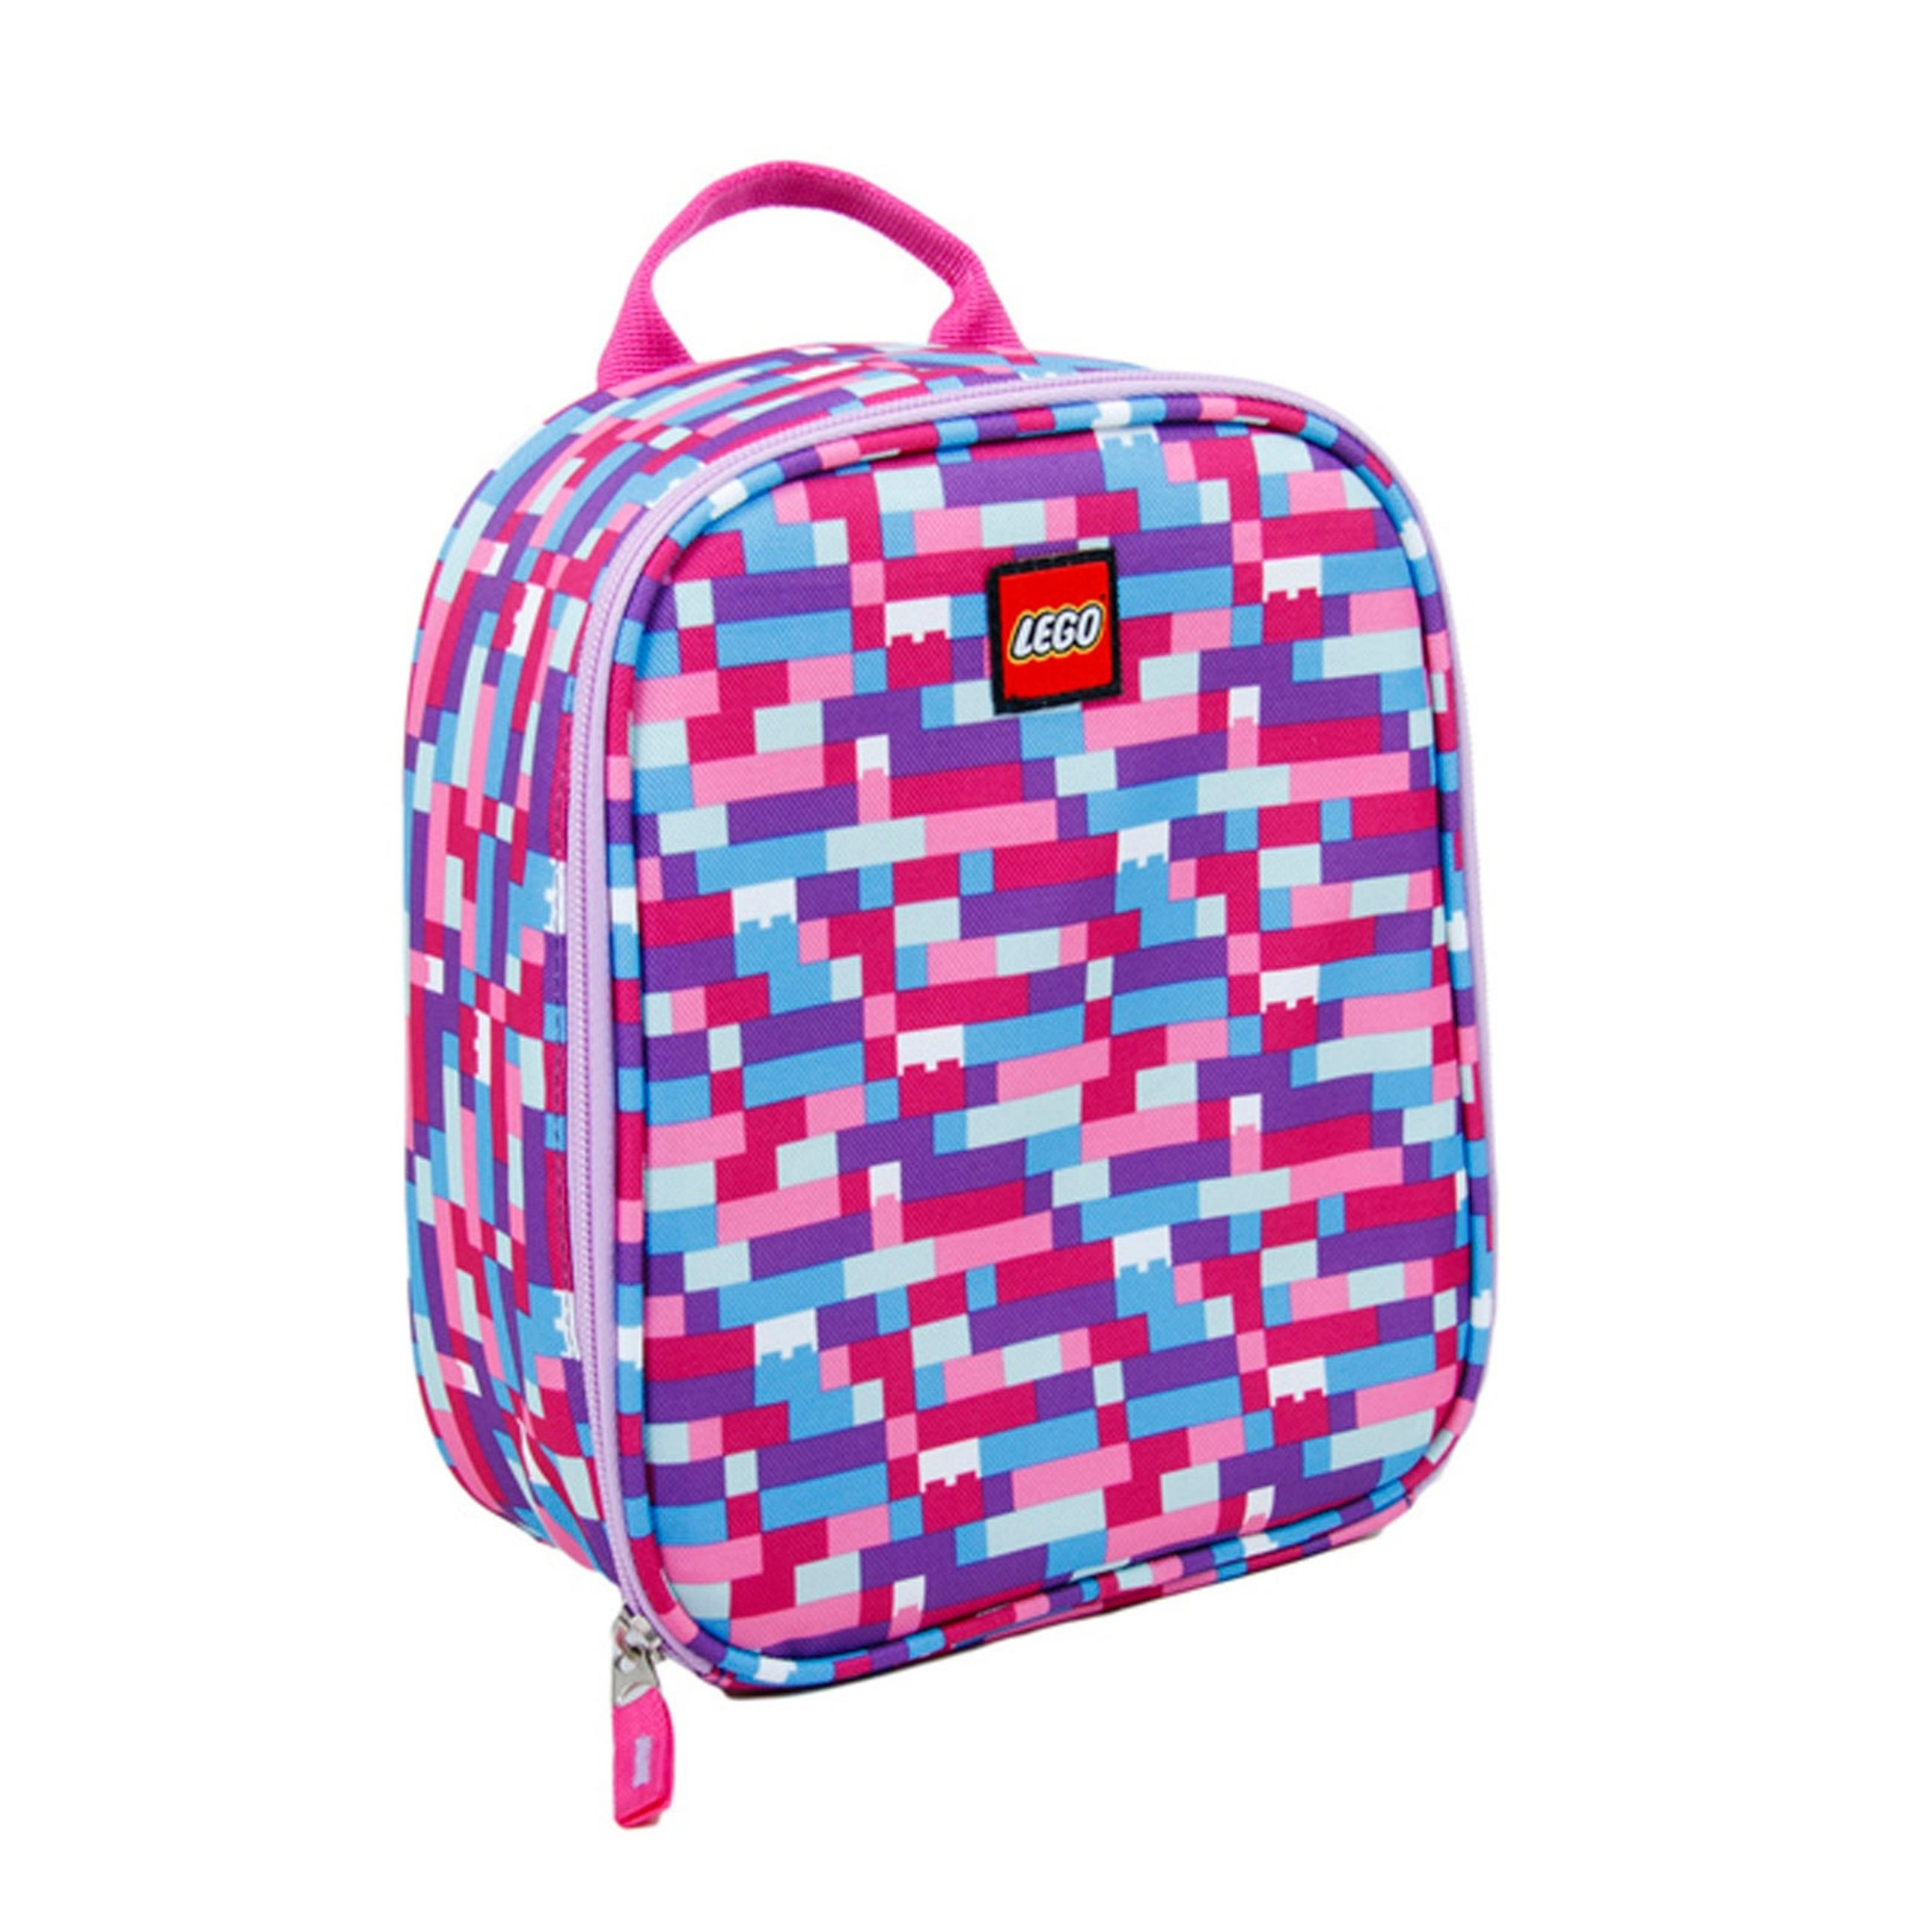 lego 5005354 pink purple brick print lunch bag scaled